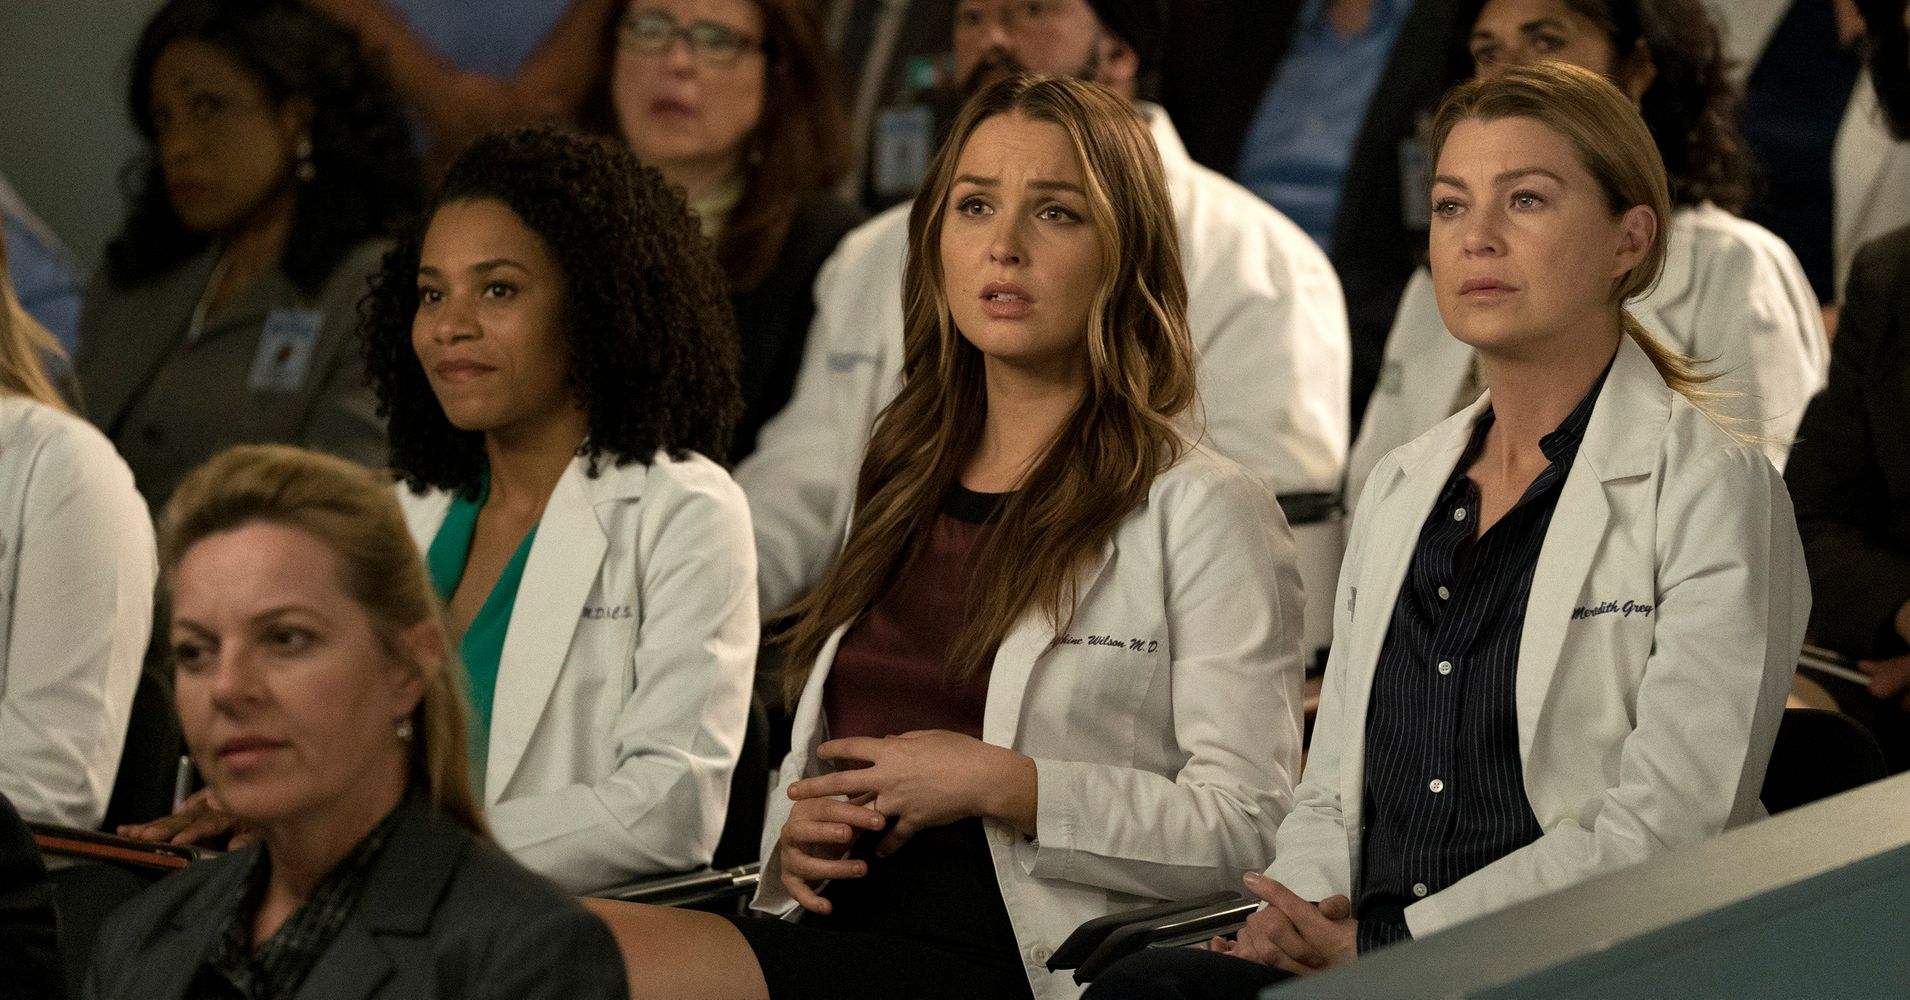 Who does meredith grey hook up with